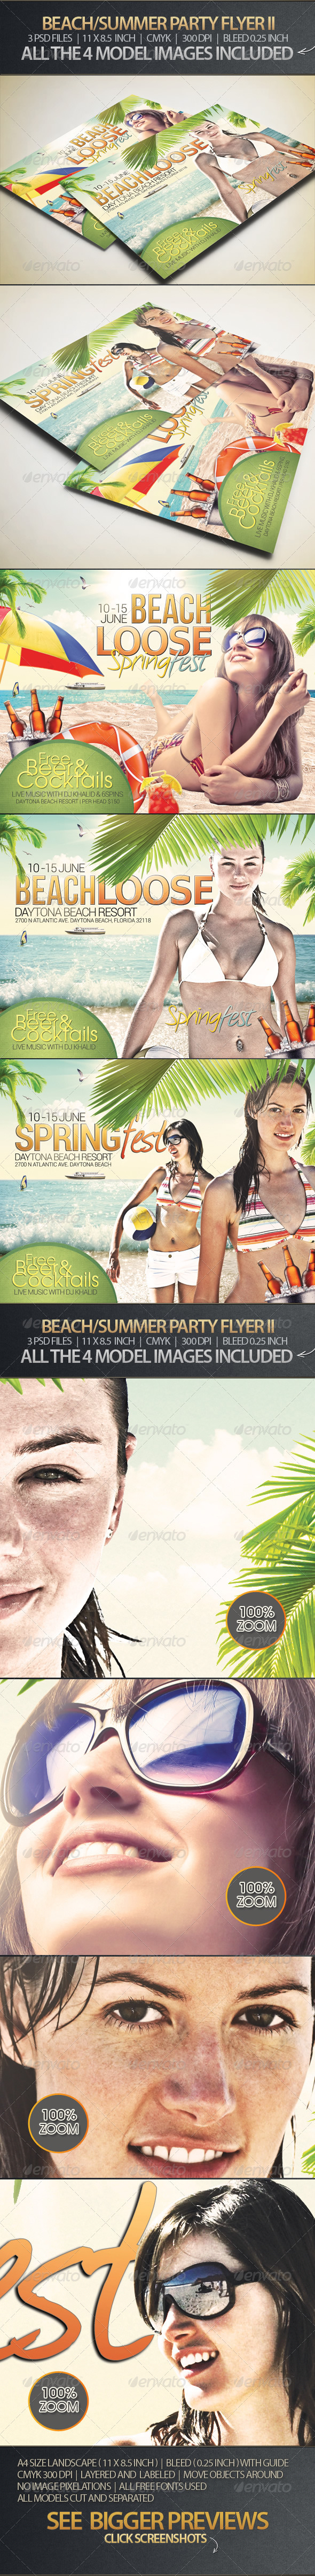 Beach, Spring or Summer Party Flyer II - Clubs & Parties Events